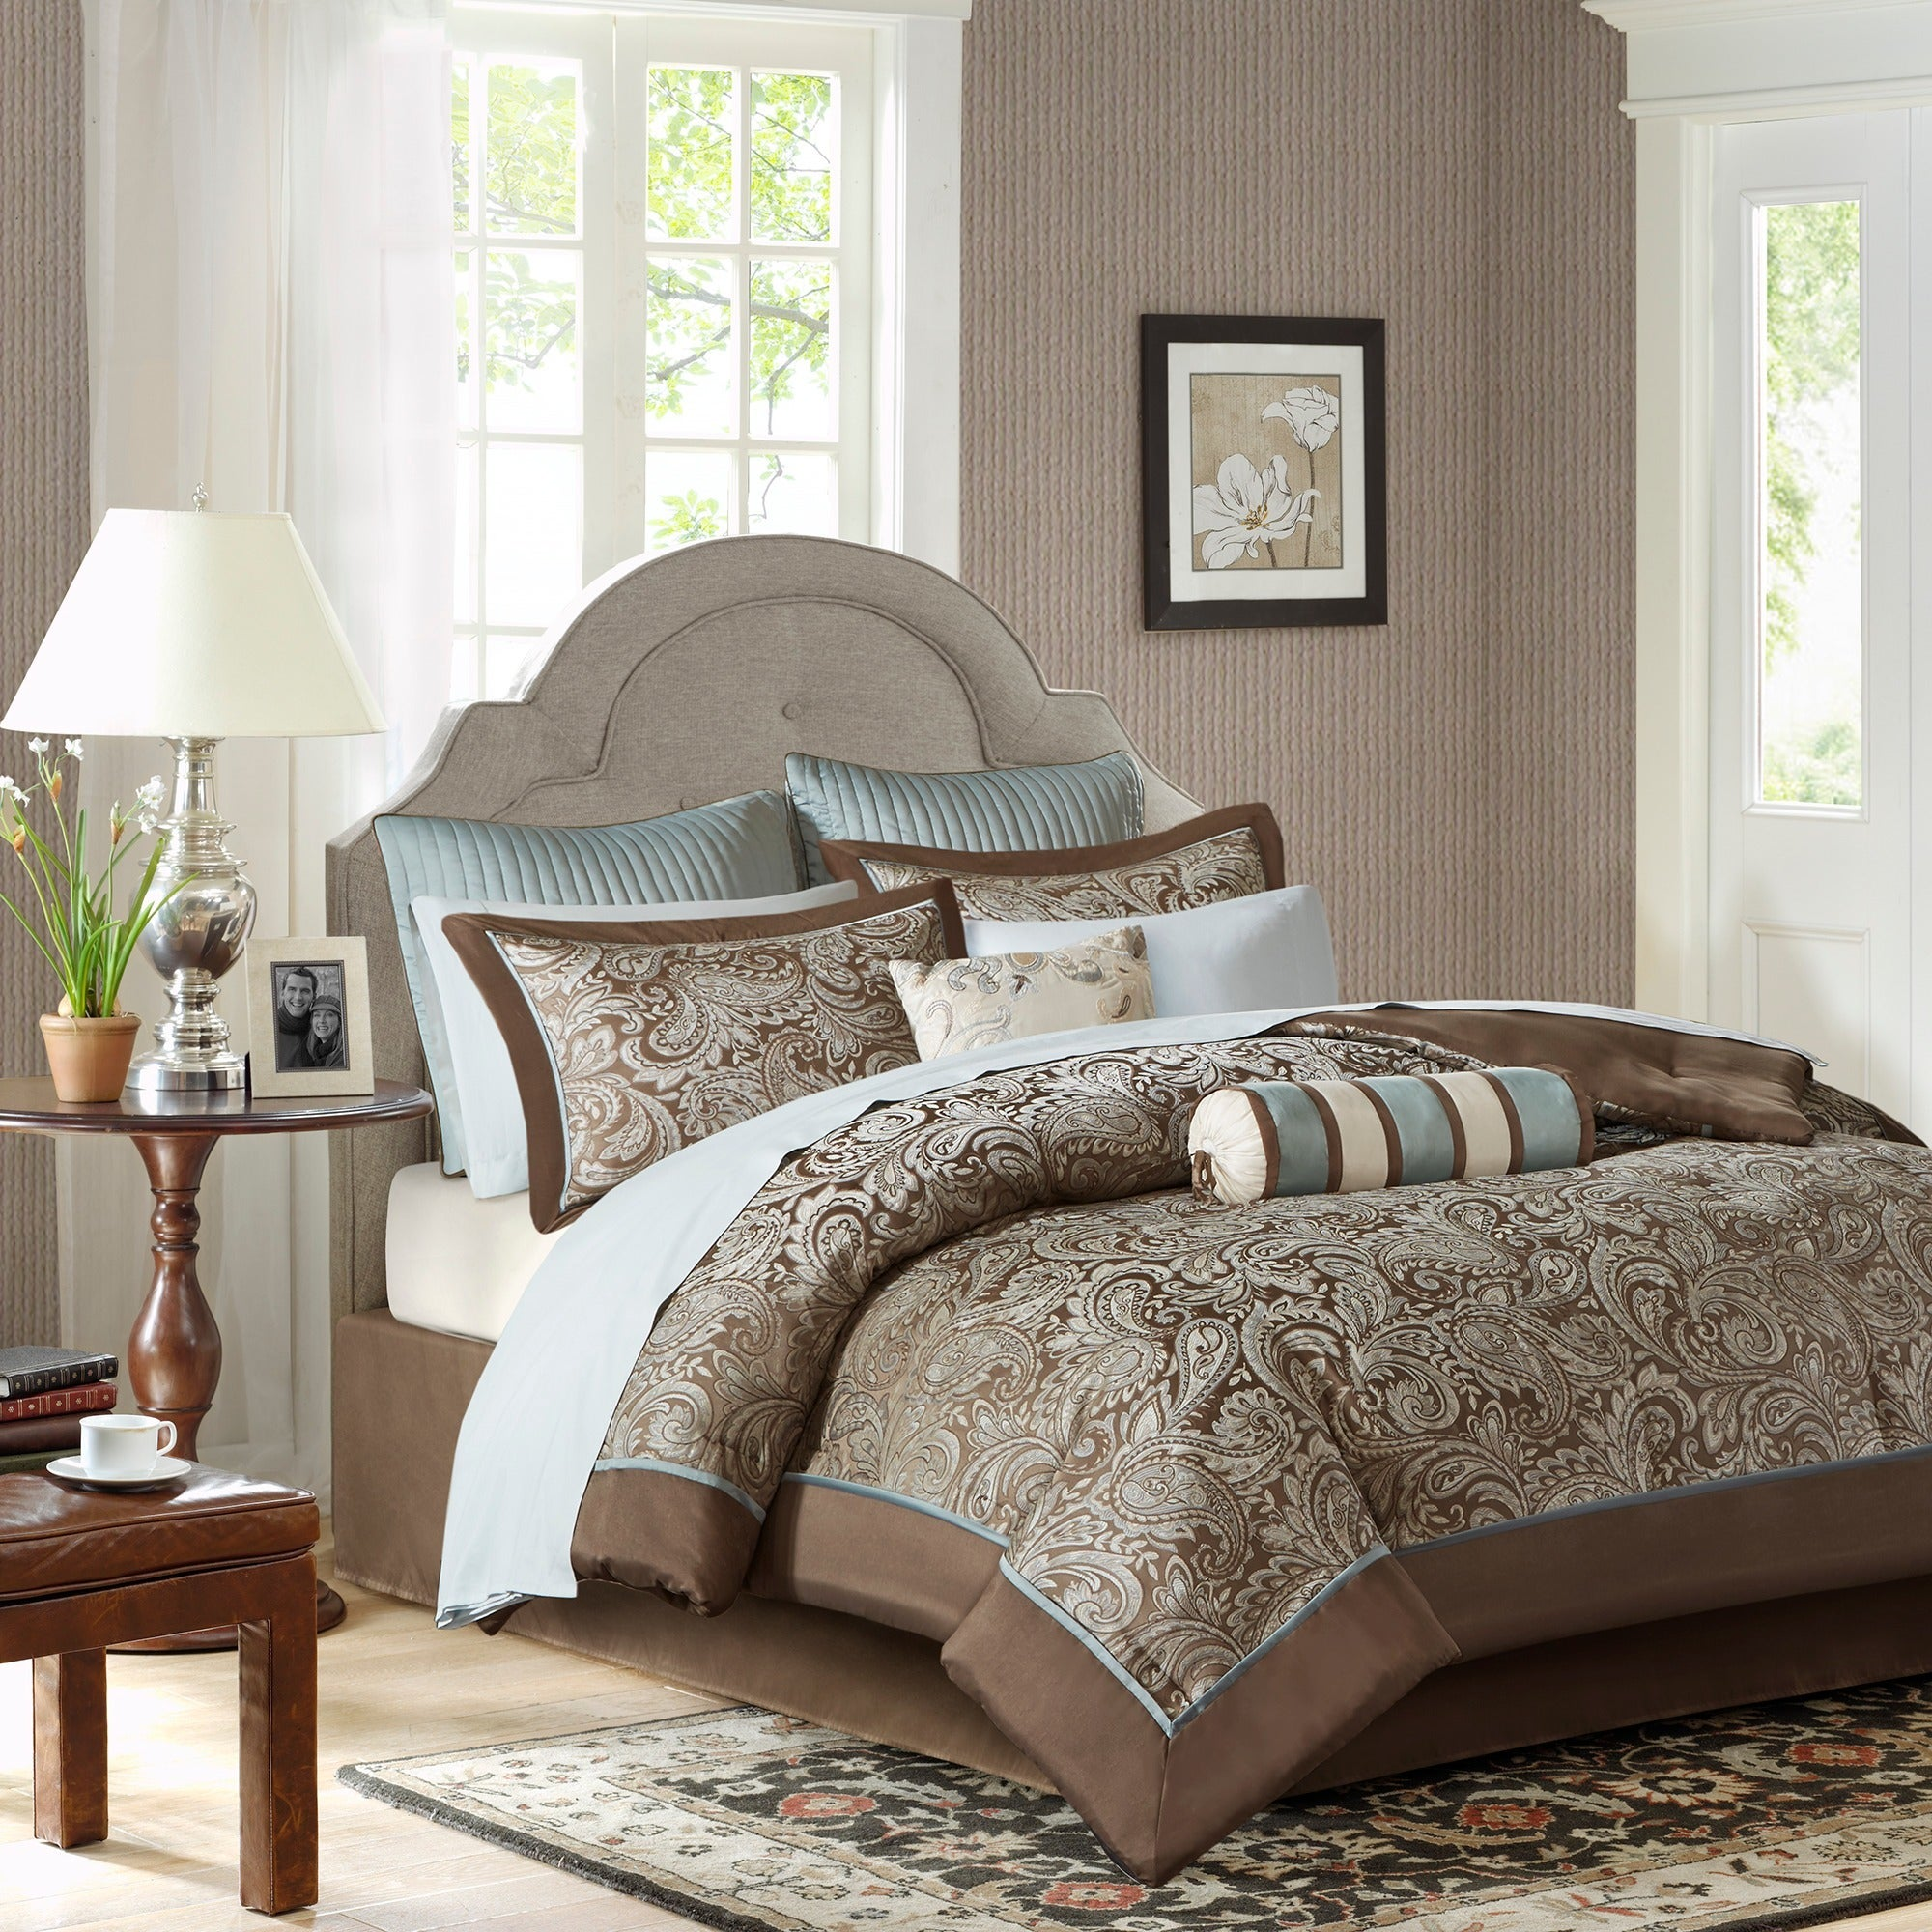 satin bedding new scala silver brand set main queen j la comforter york